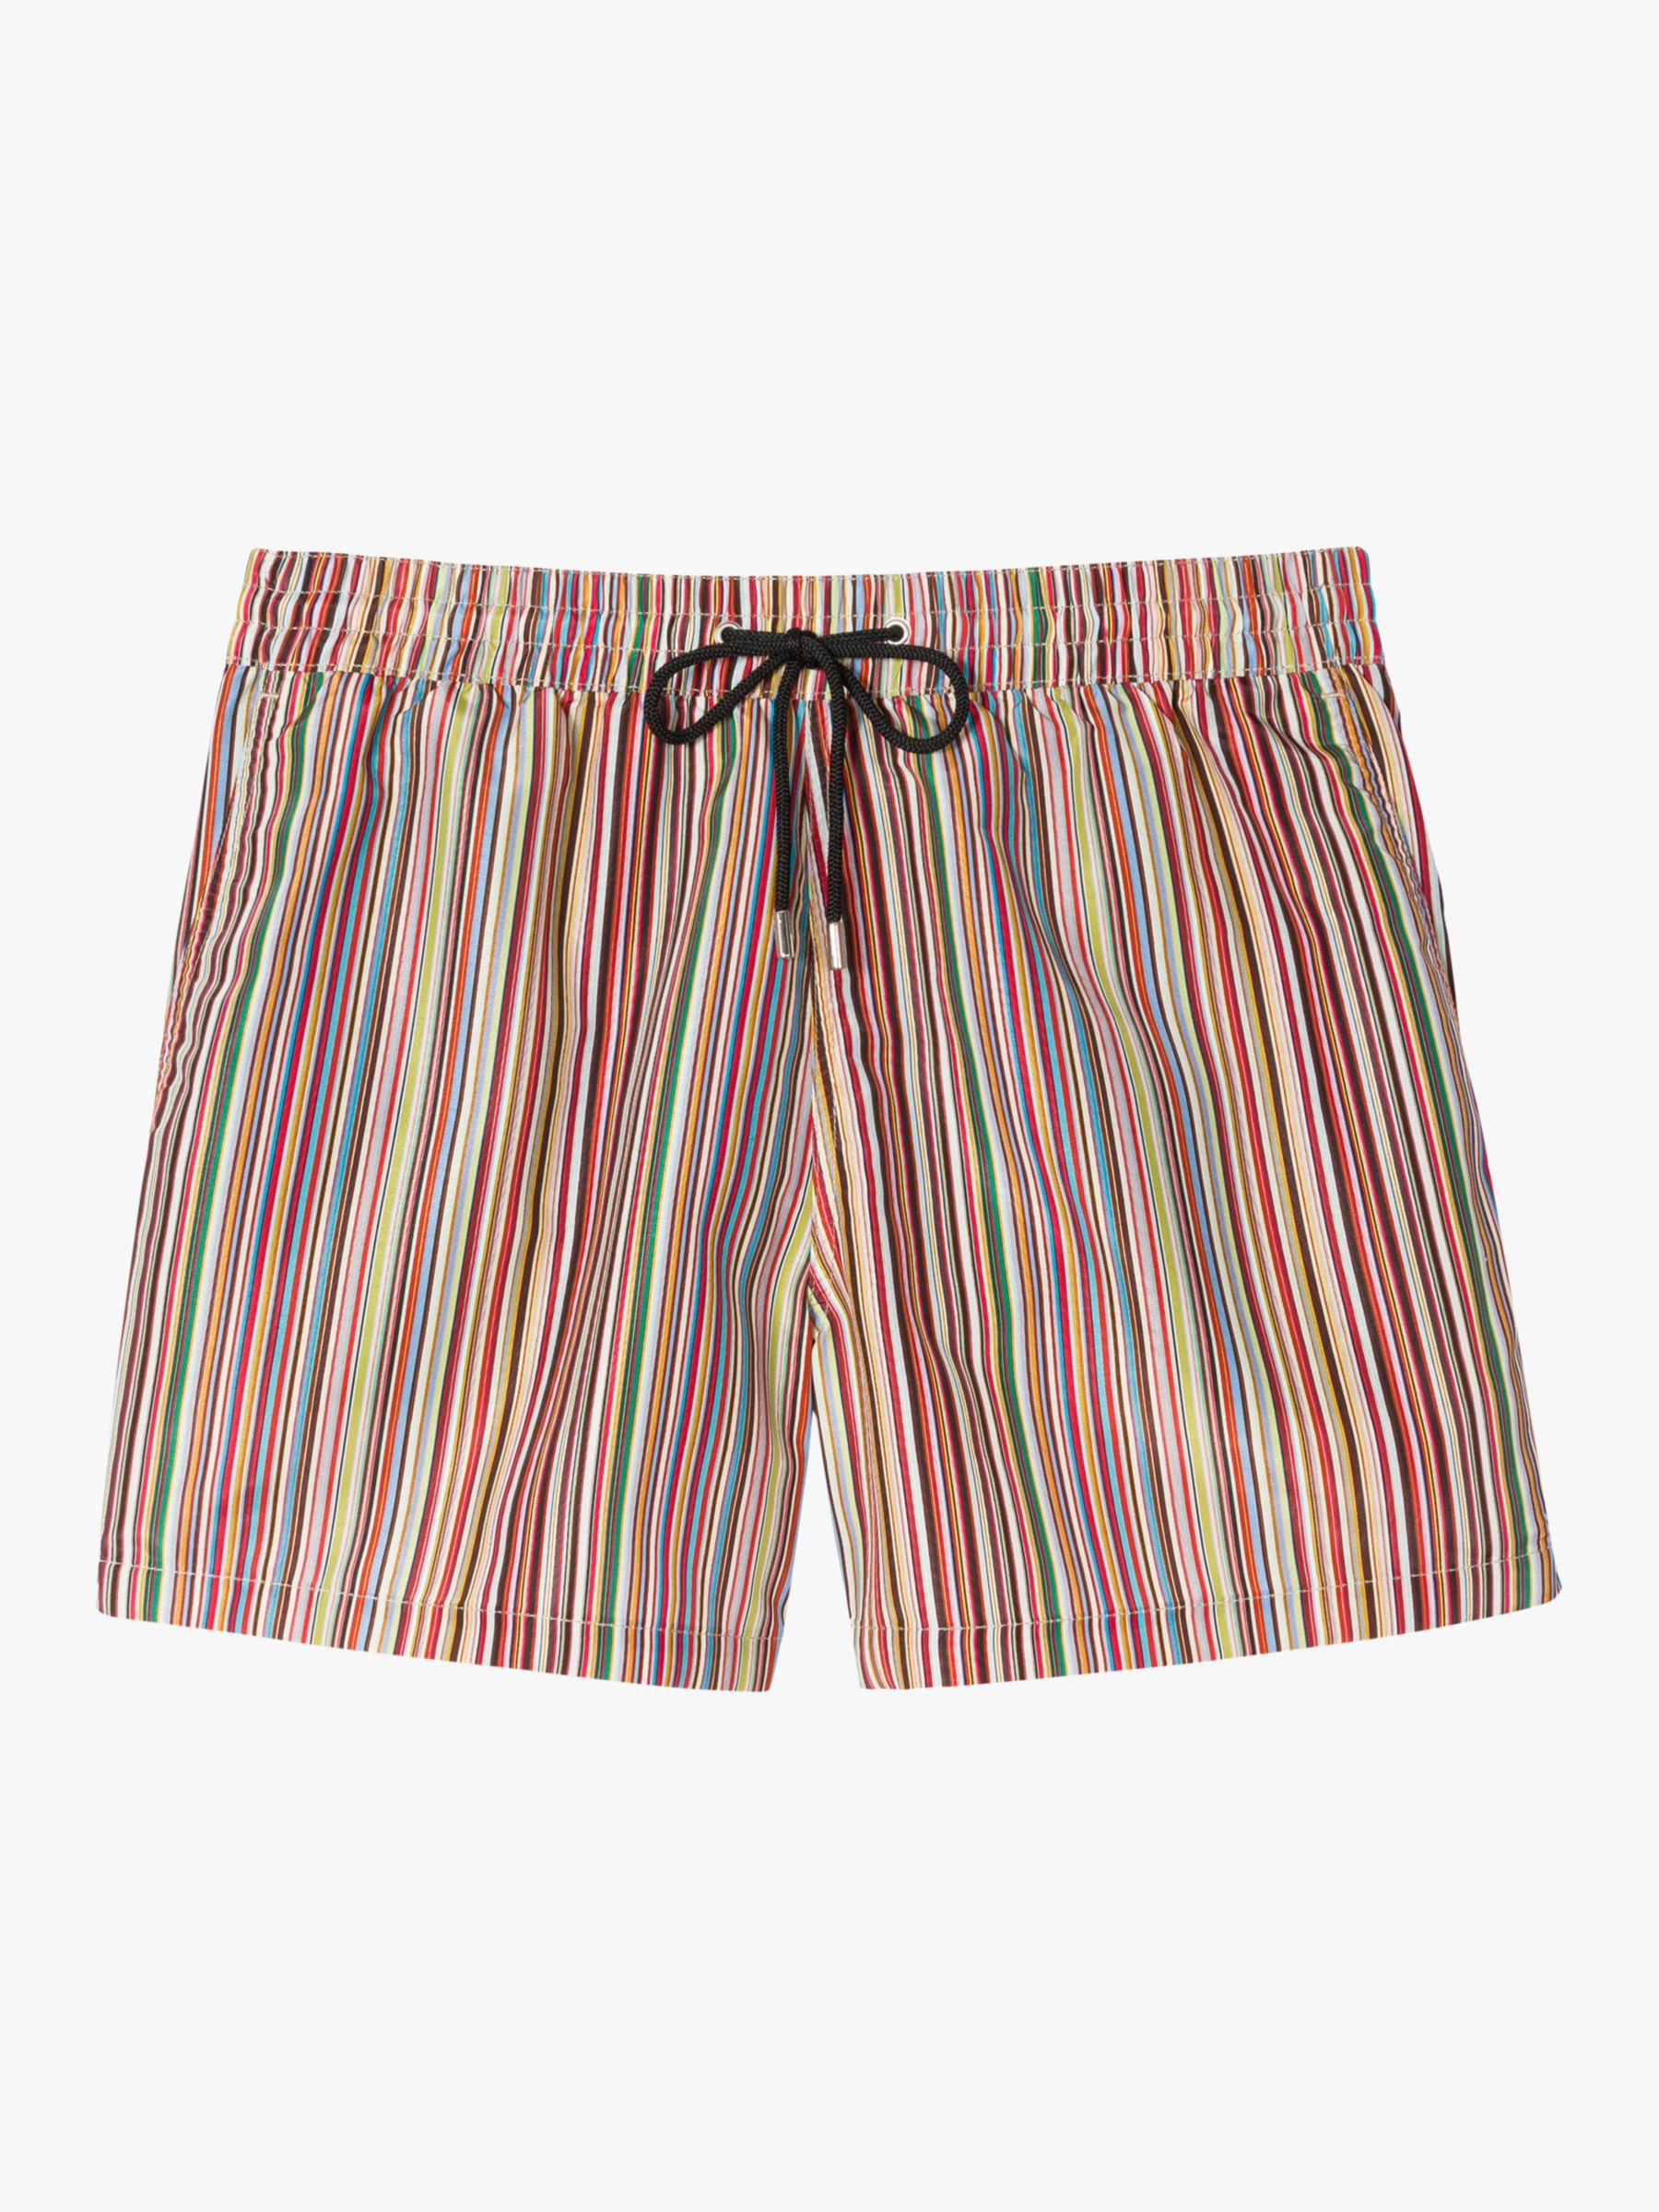 Paul Smith PS Paul Smith Striped Recycled Poly Swim Shorts, Multi